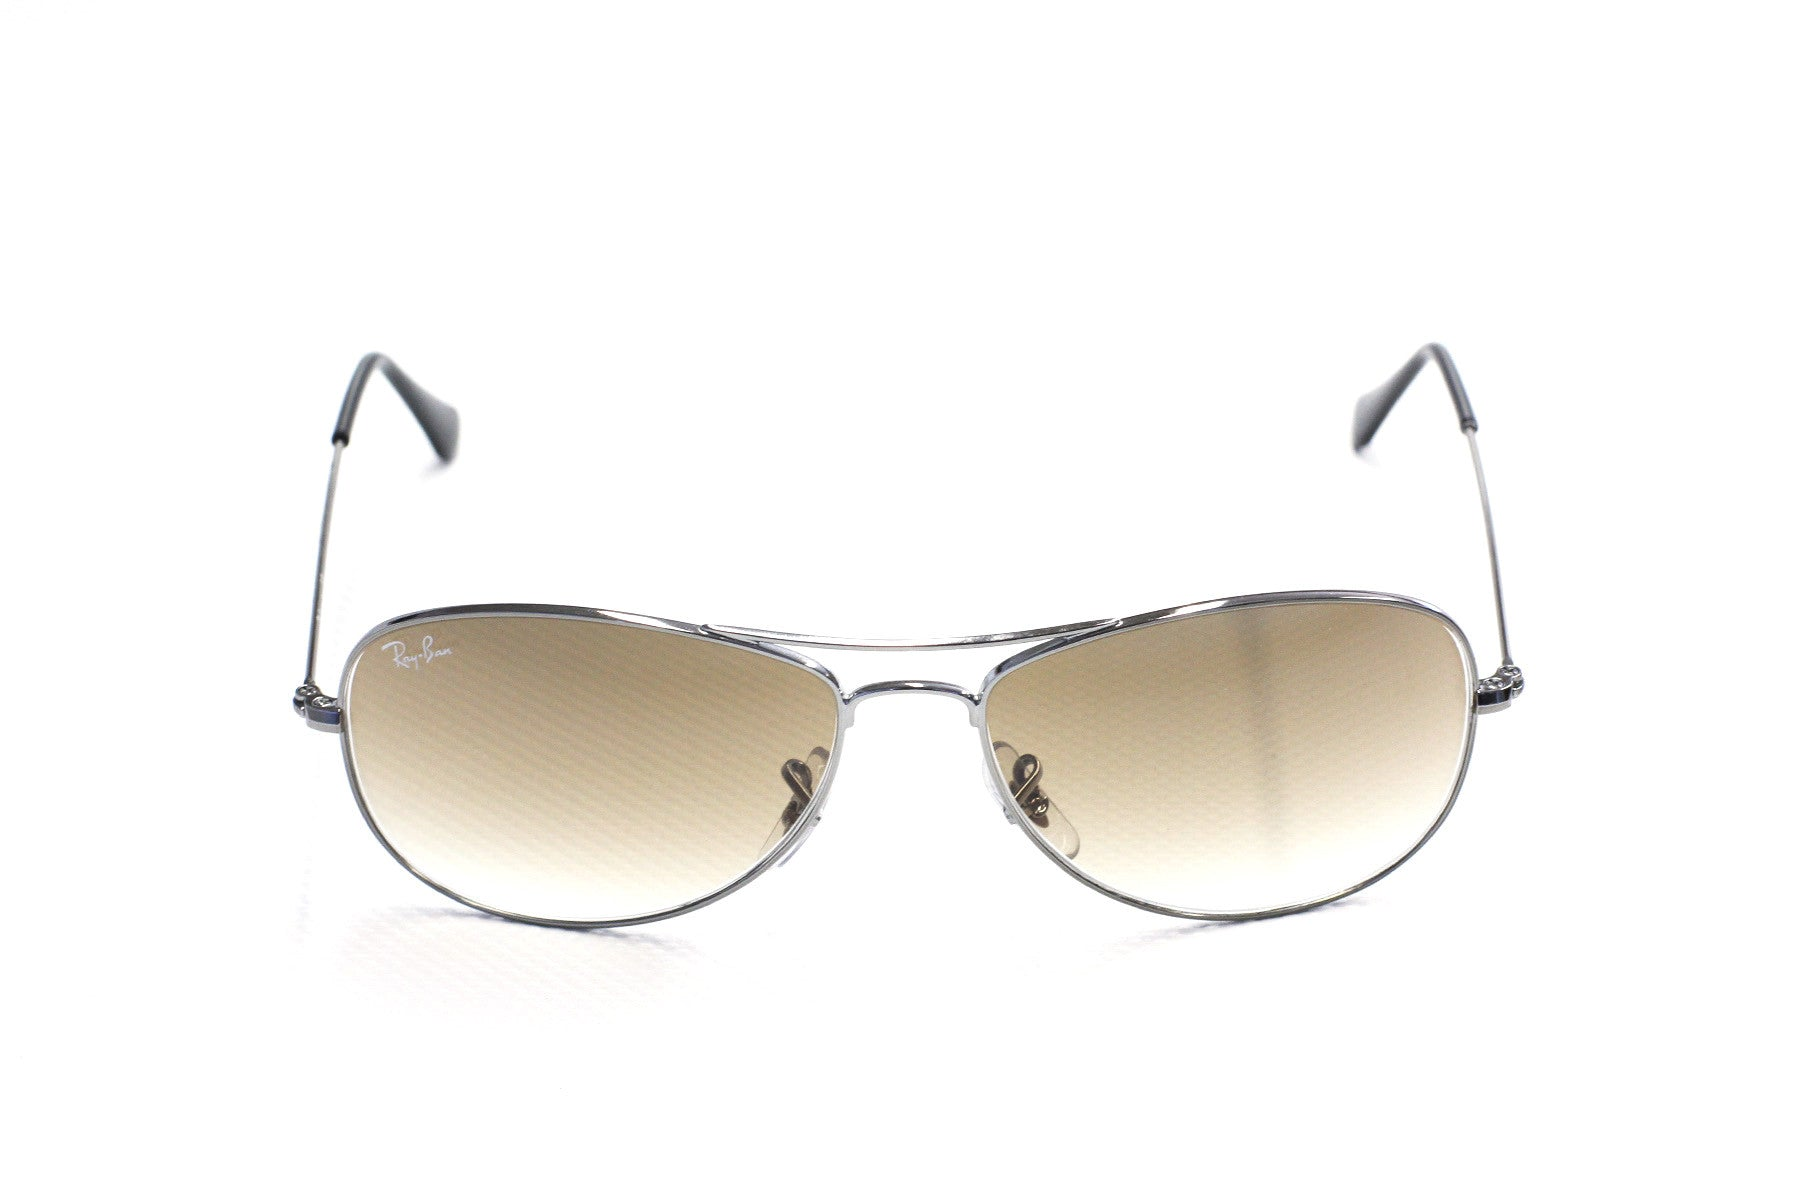 81466533ce00 ... discount ray ban rb3362 cockpit 004 51 silver sunglasses at enderbys uk  eb3b4 89ec0